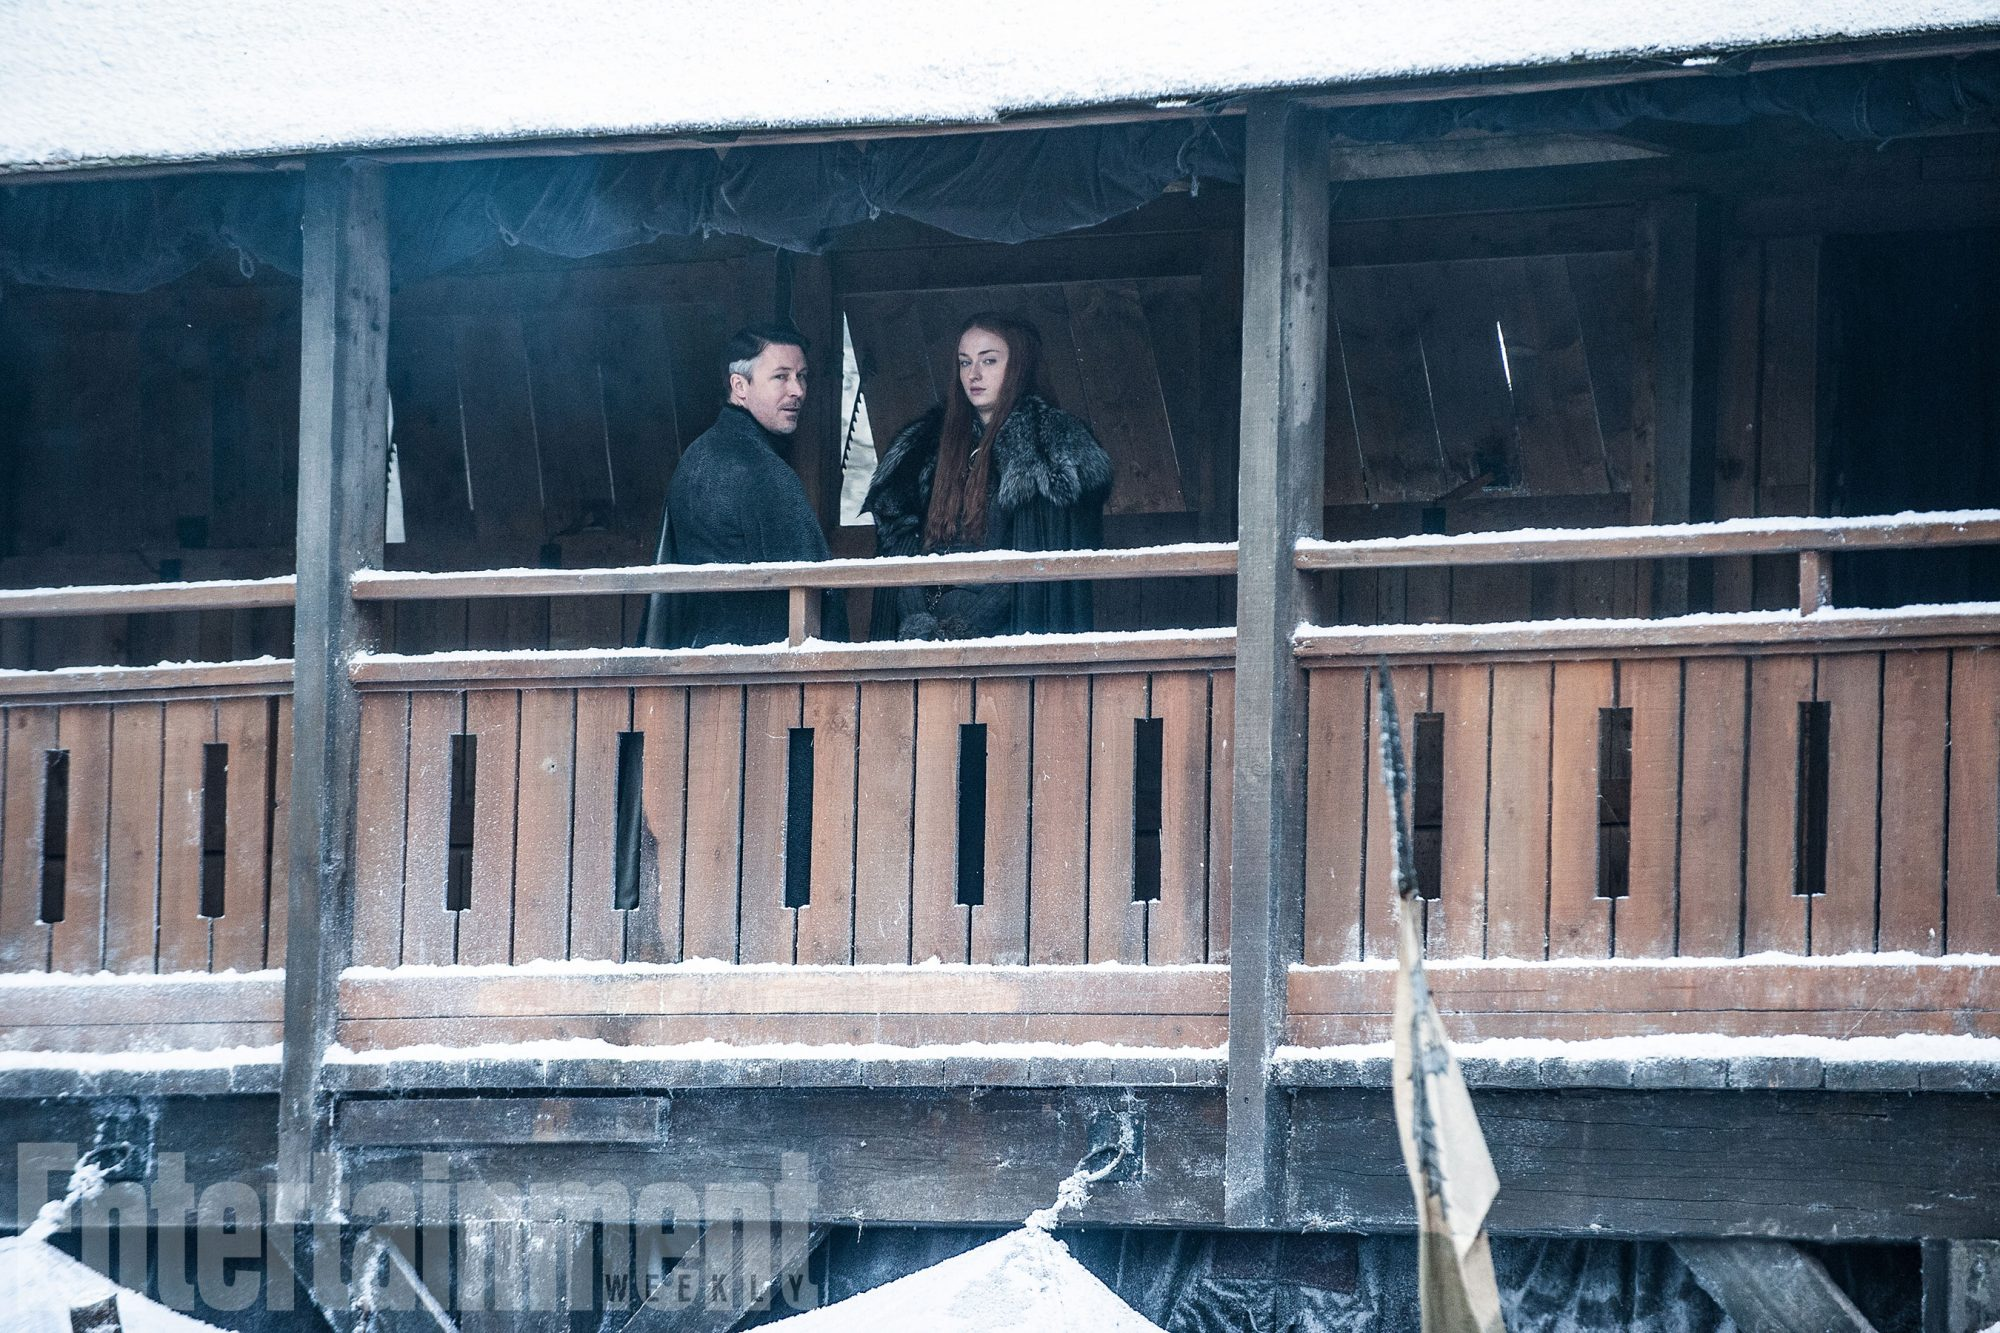 Littlefinger (Aidan Gillen) and Sansa Stark (Sophie Turner) plot at Winterfell